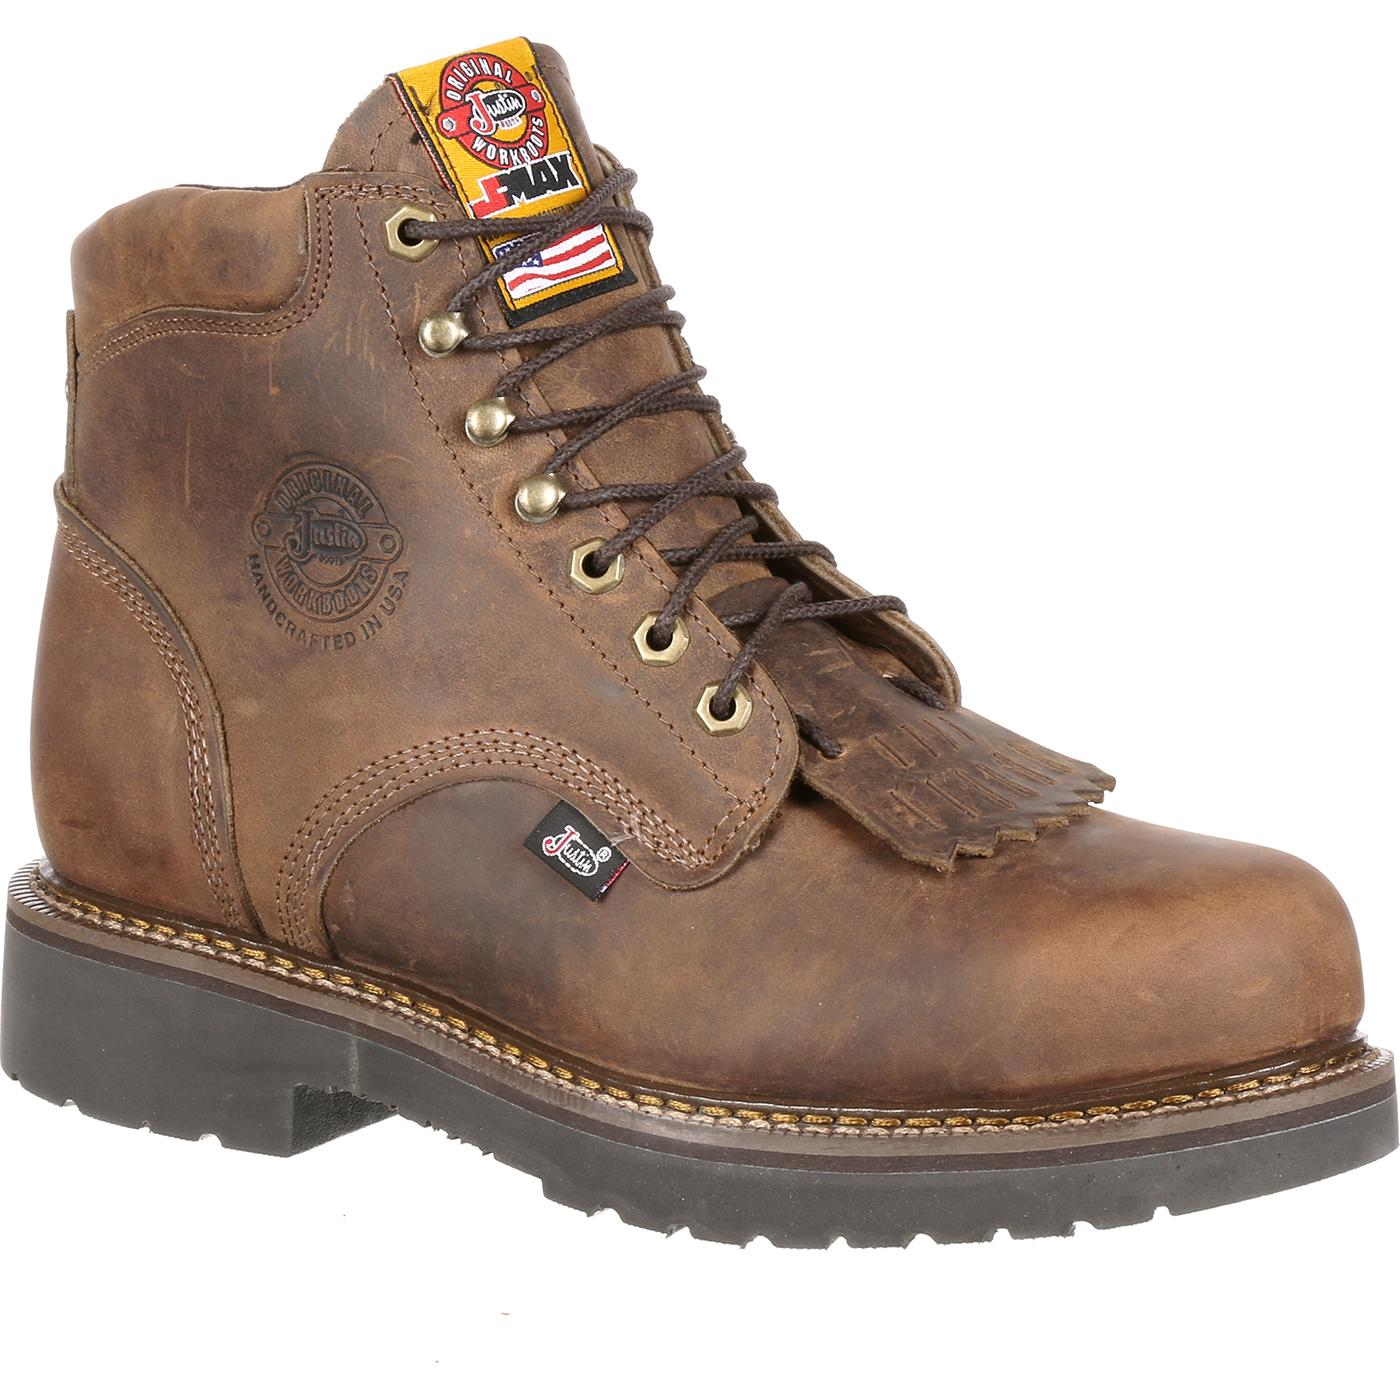 bf8ea464bea Justin Work Steel Toe CSA Approved Puncture Resistant Work Boot